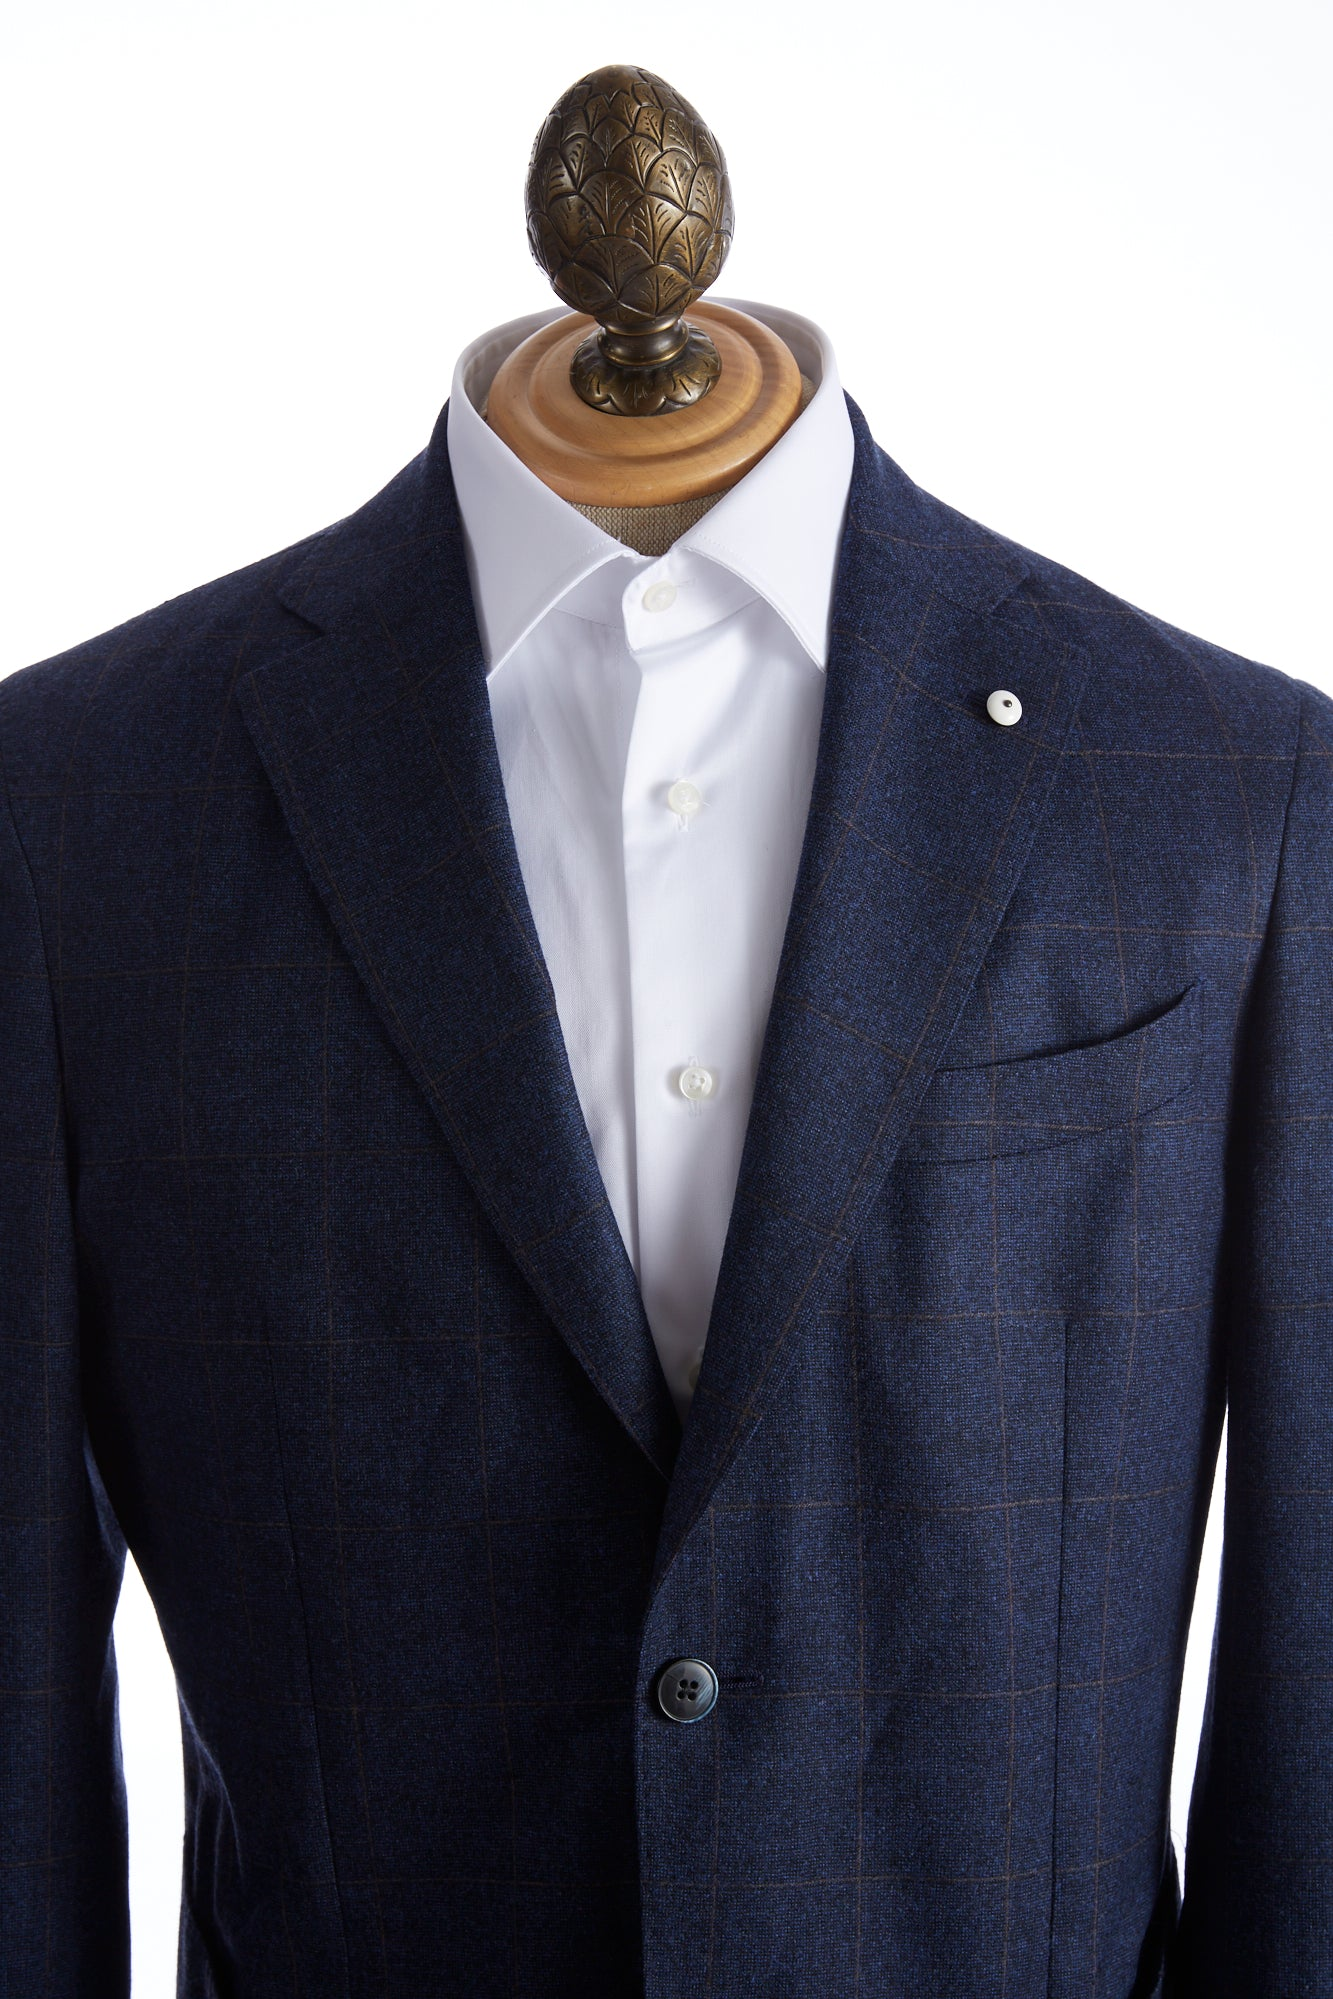 L.B.M. 1911 Blue with Brown Check Sport Jacket - Sport Jackets - L.B.M. 1911 - LALONDE's